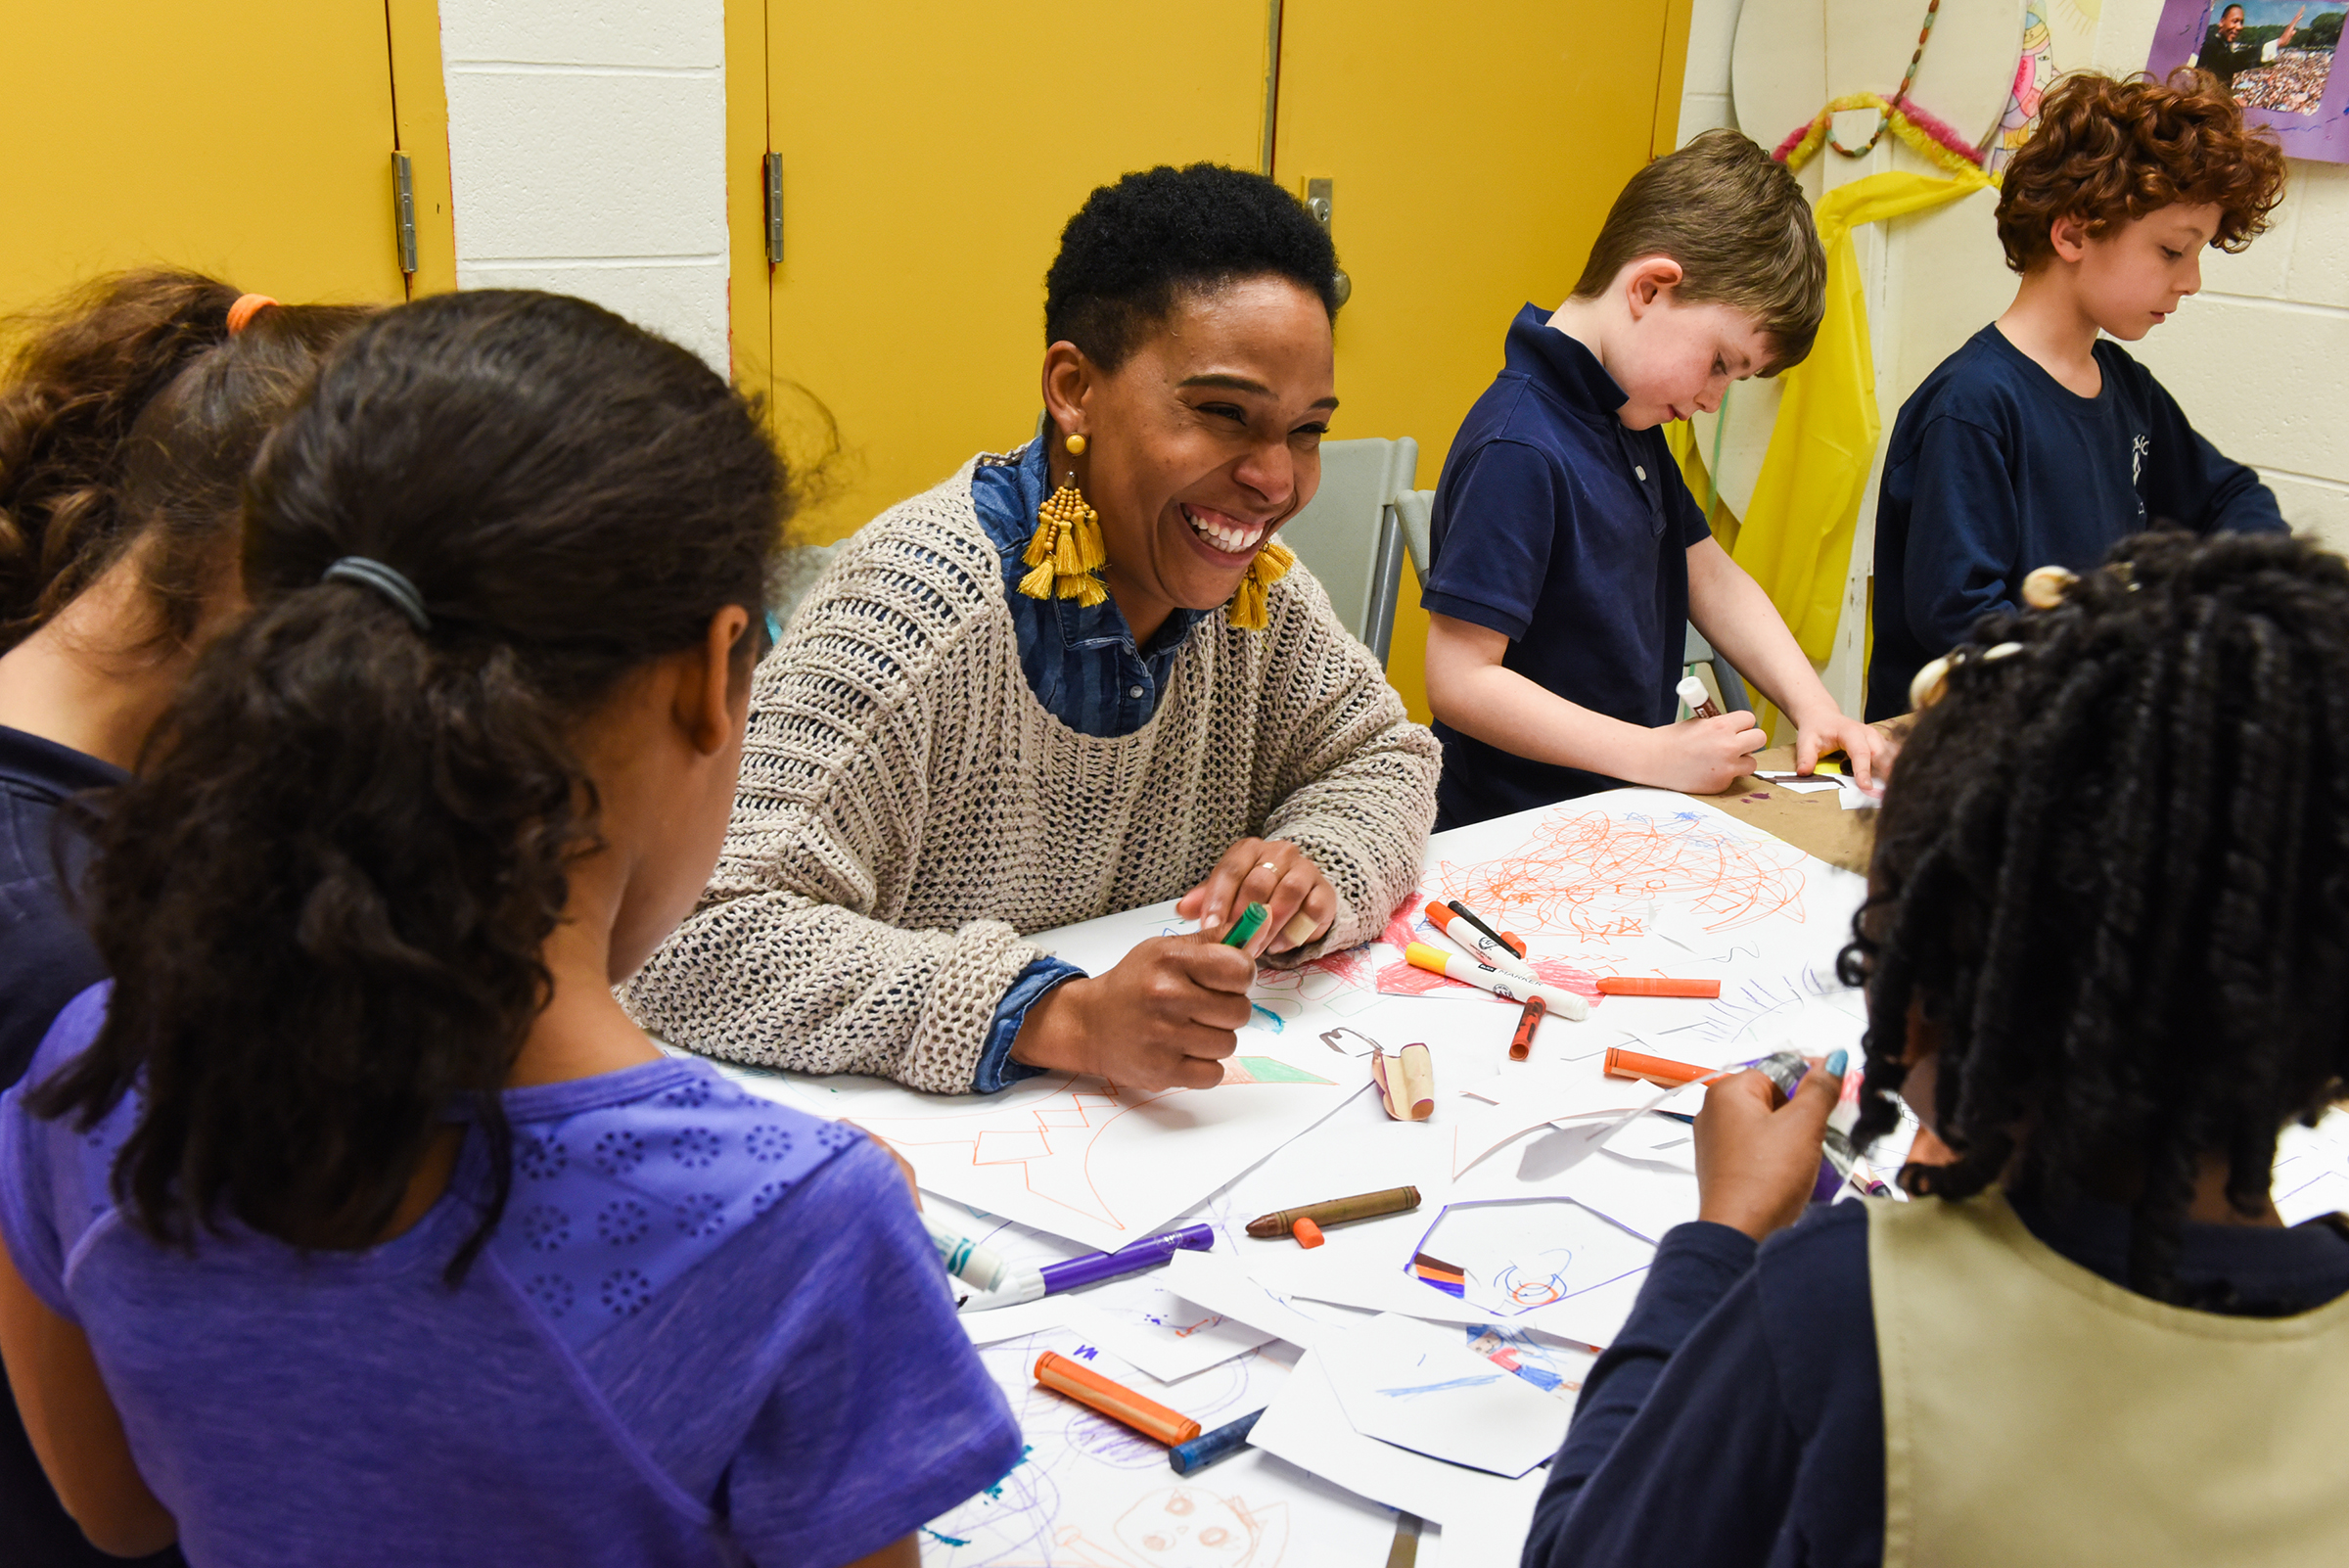 """Murals on the Move"" made a stop at East Passyunk Community Recreation Center on April 17, 2018, where teaching artist Inisar ""Star"" Hamilton lead an art class. This pilot Mural Arts initiative will travel to nine recreation centers, bringing professional artists face to face with kids in after-school programs. Brianna Spause / Philadelphia Parks & Recreation"